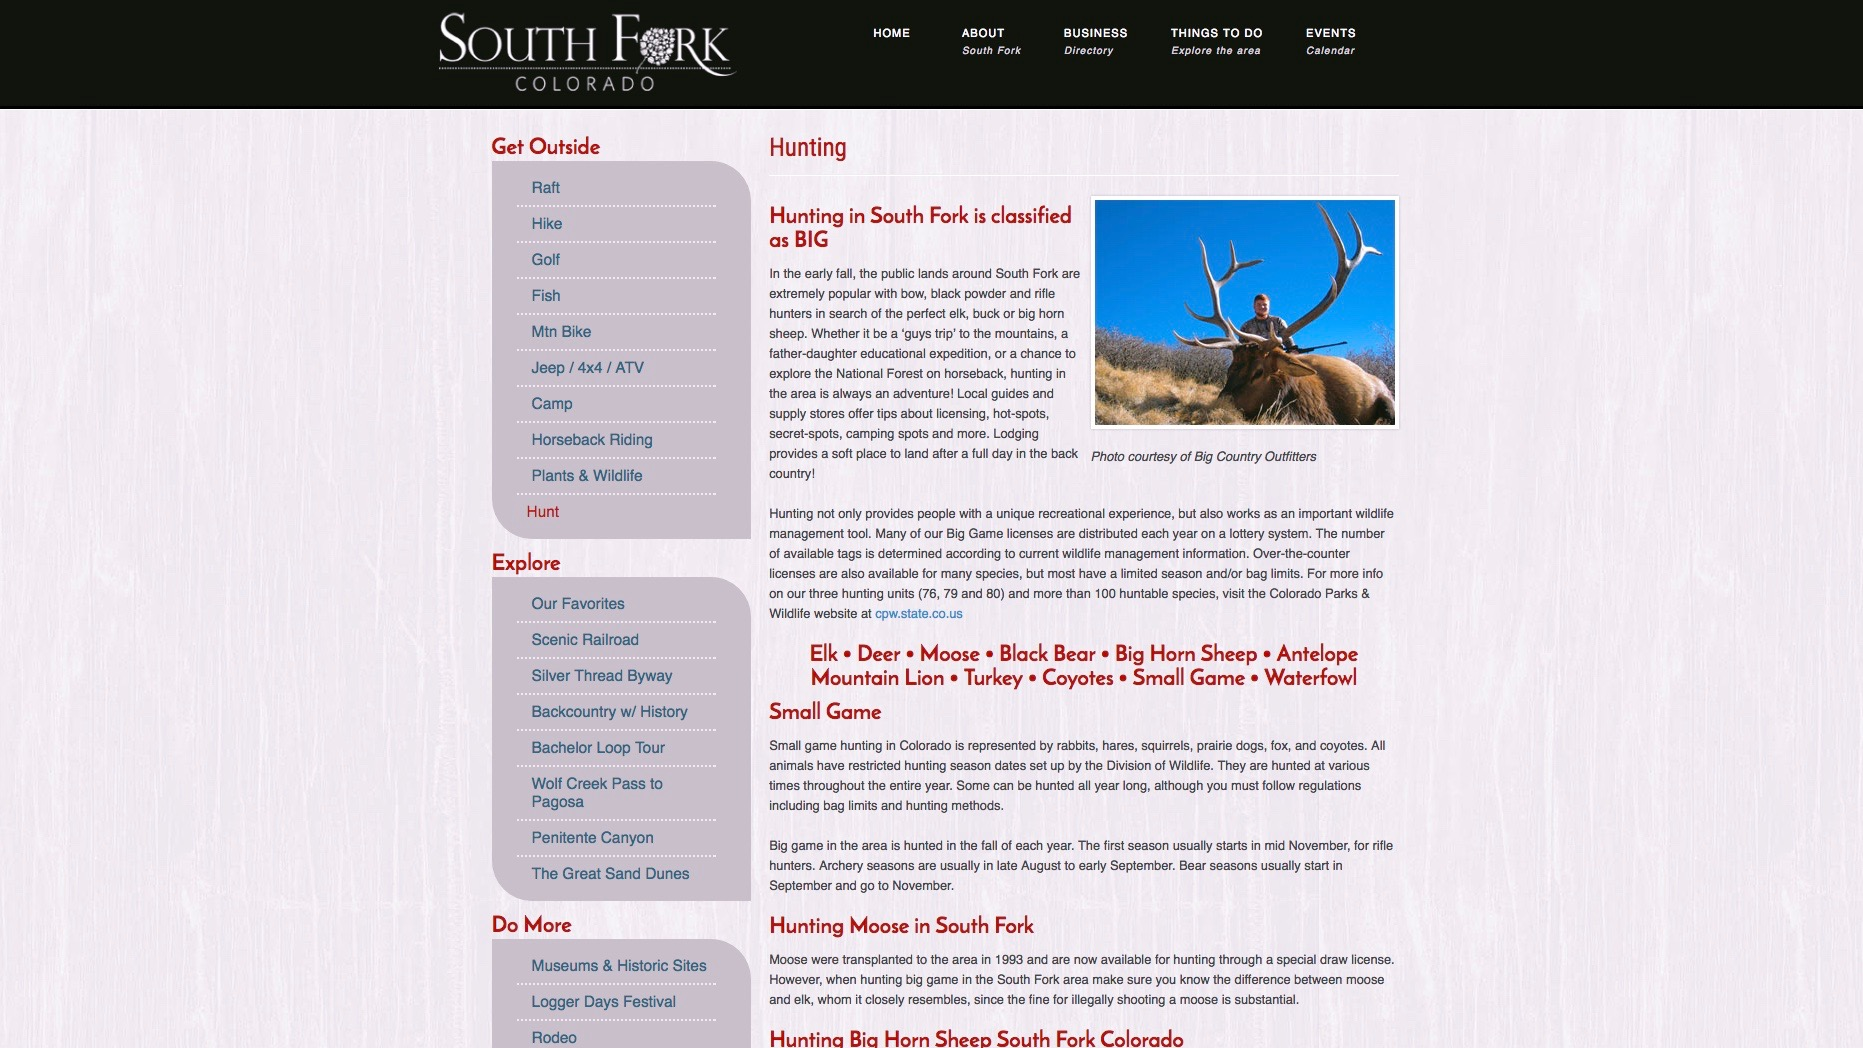 South Fork Hunting info